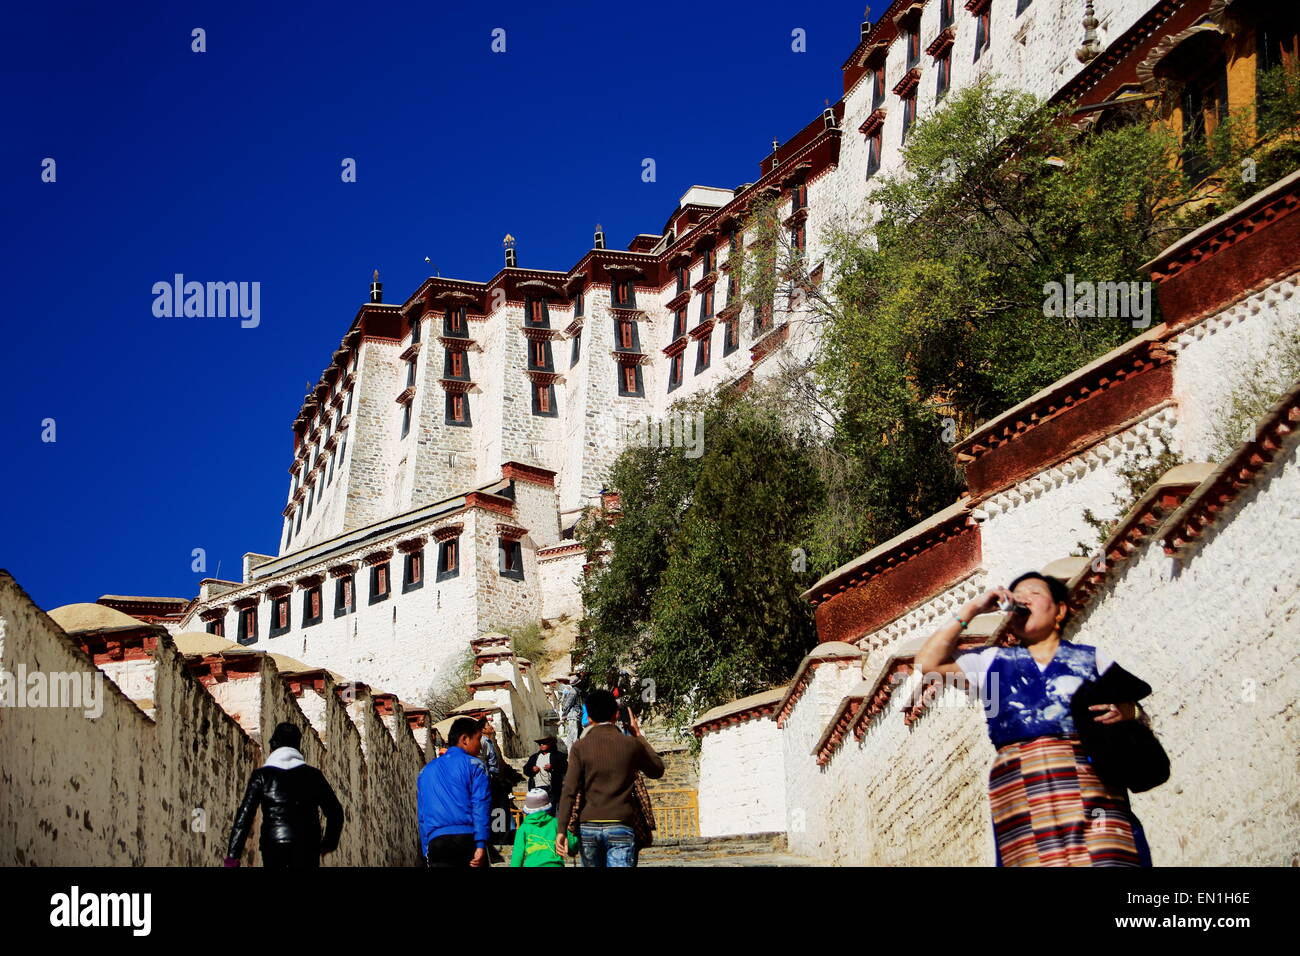 LHASA, TIBET, CHINA - OCTOBER 20: Tibetans climb the stairs leading to the inner Potala palace to visit the monument.Lhasa - Stock Image